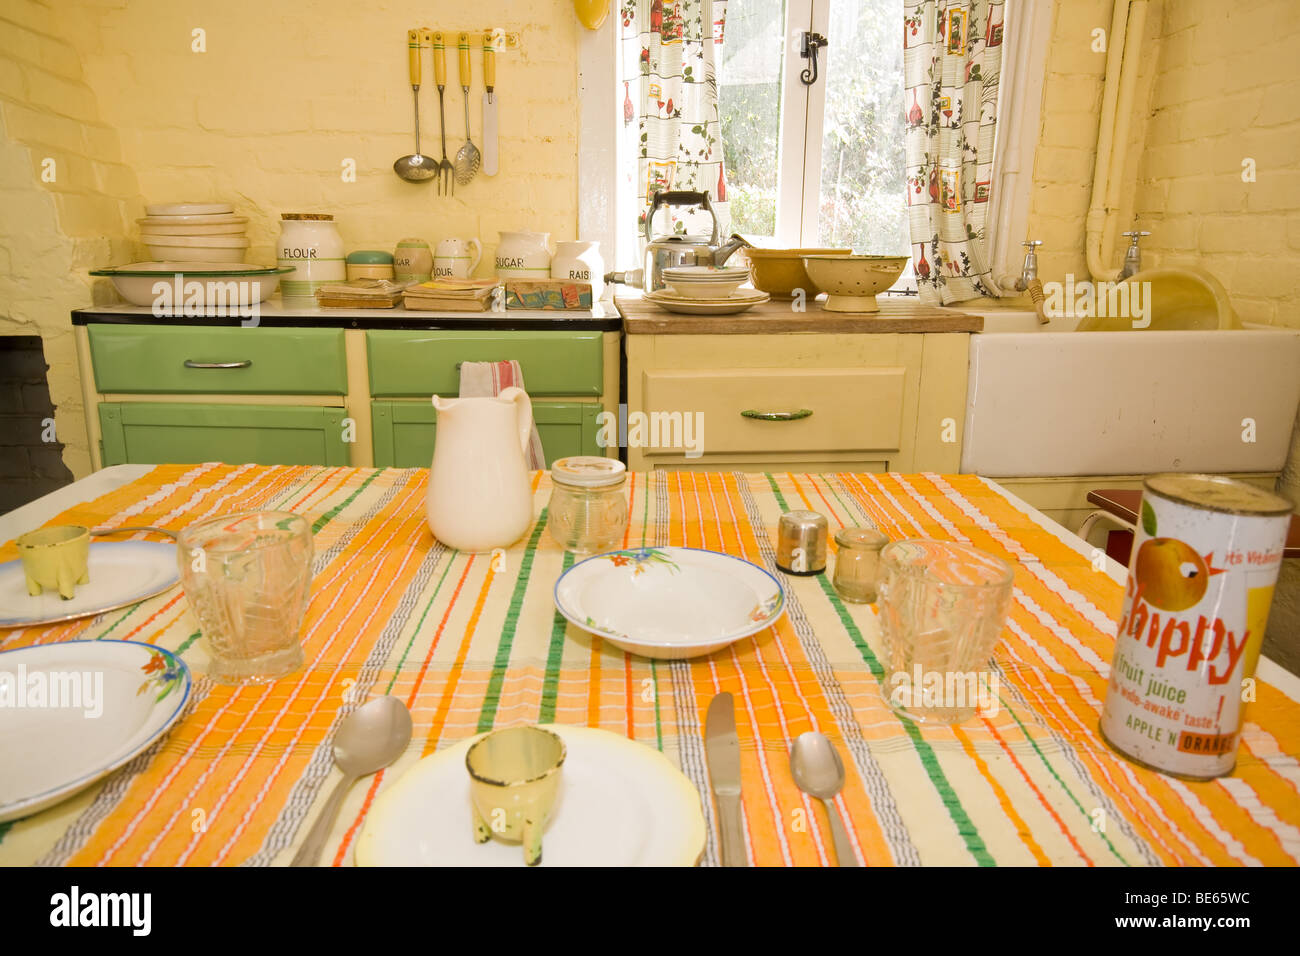 1950S Kitchen 1950S Kitchen Stock Photos & 1950S Kitchen Stock Images  Alamy